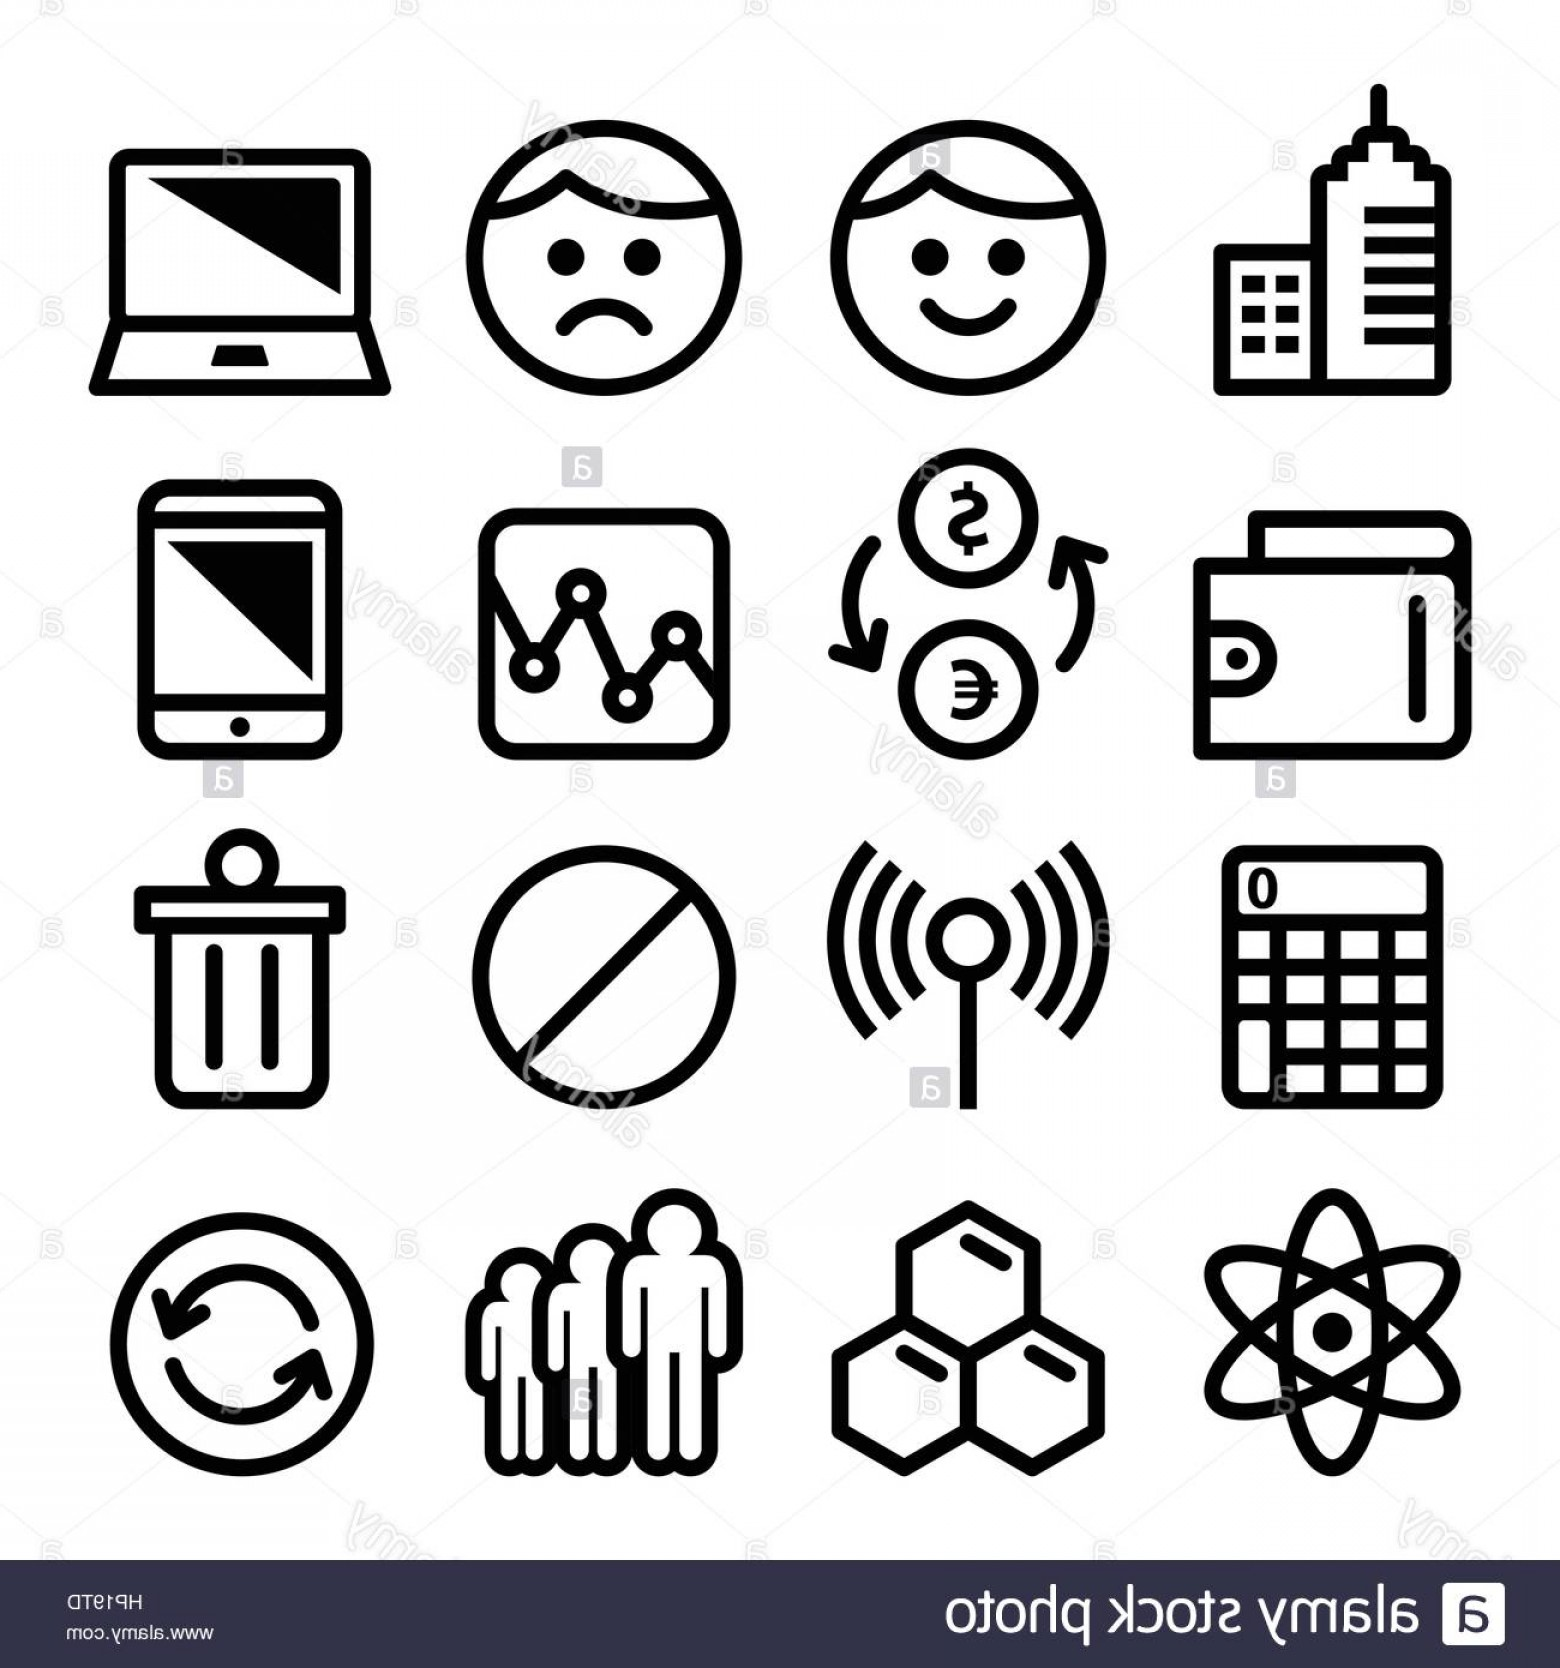 Vector Applications On Computers: Stock Photo Web Menu Internet Line Stroke Icons Set Tech Application Vector Icons